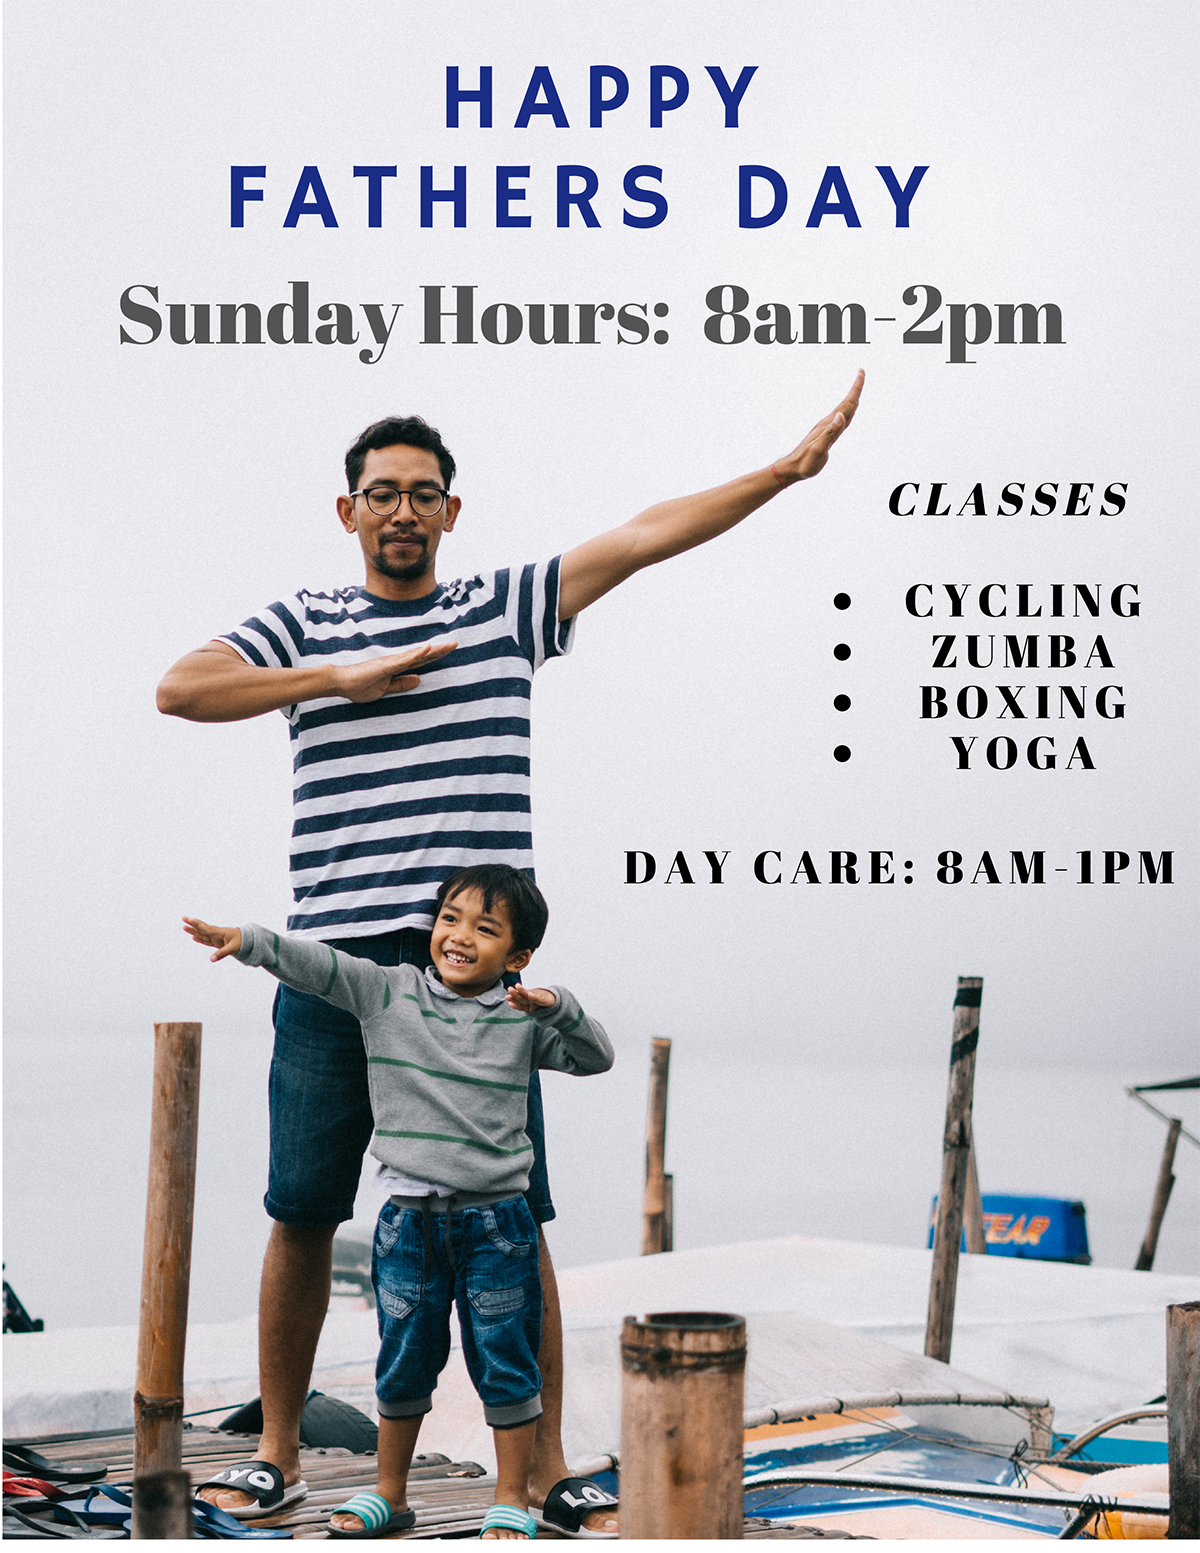 Father's Day Hours & Classes